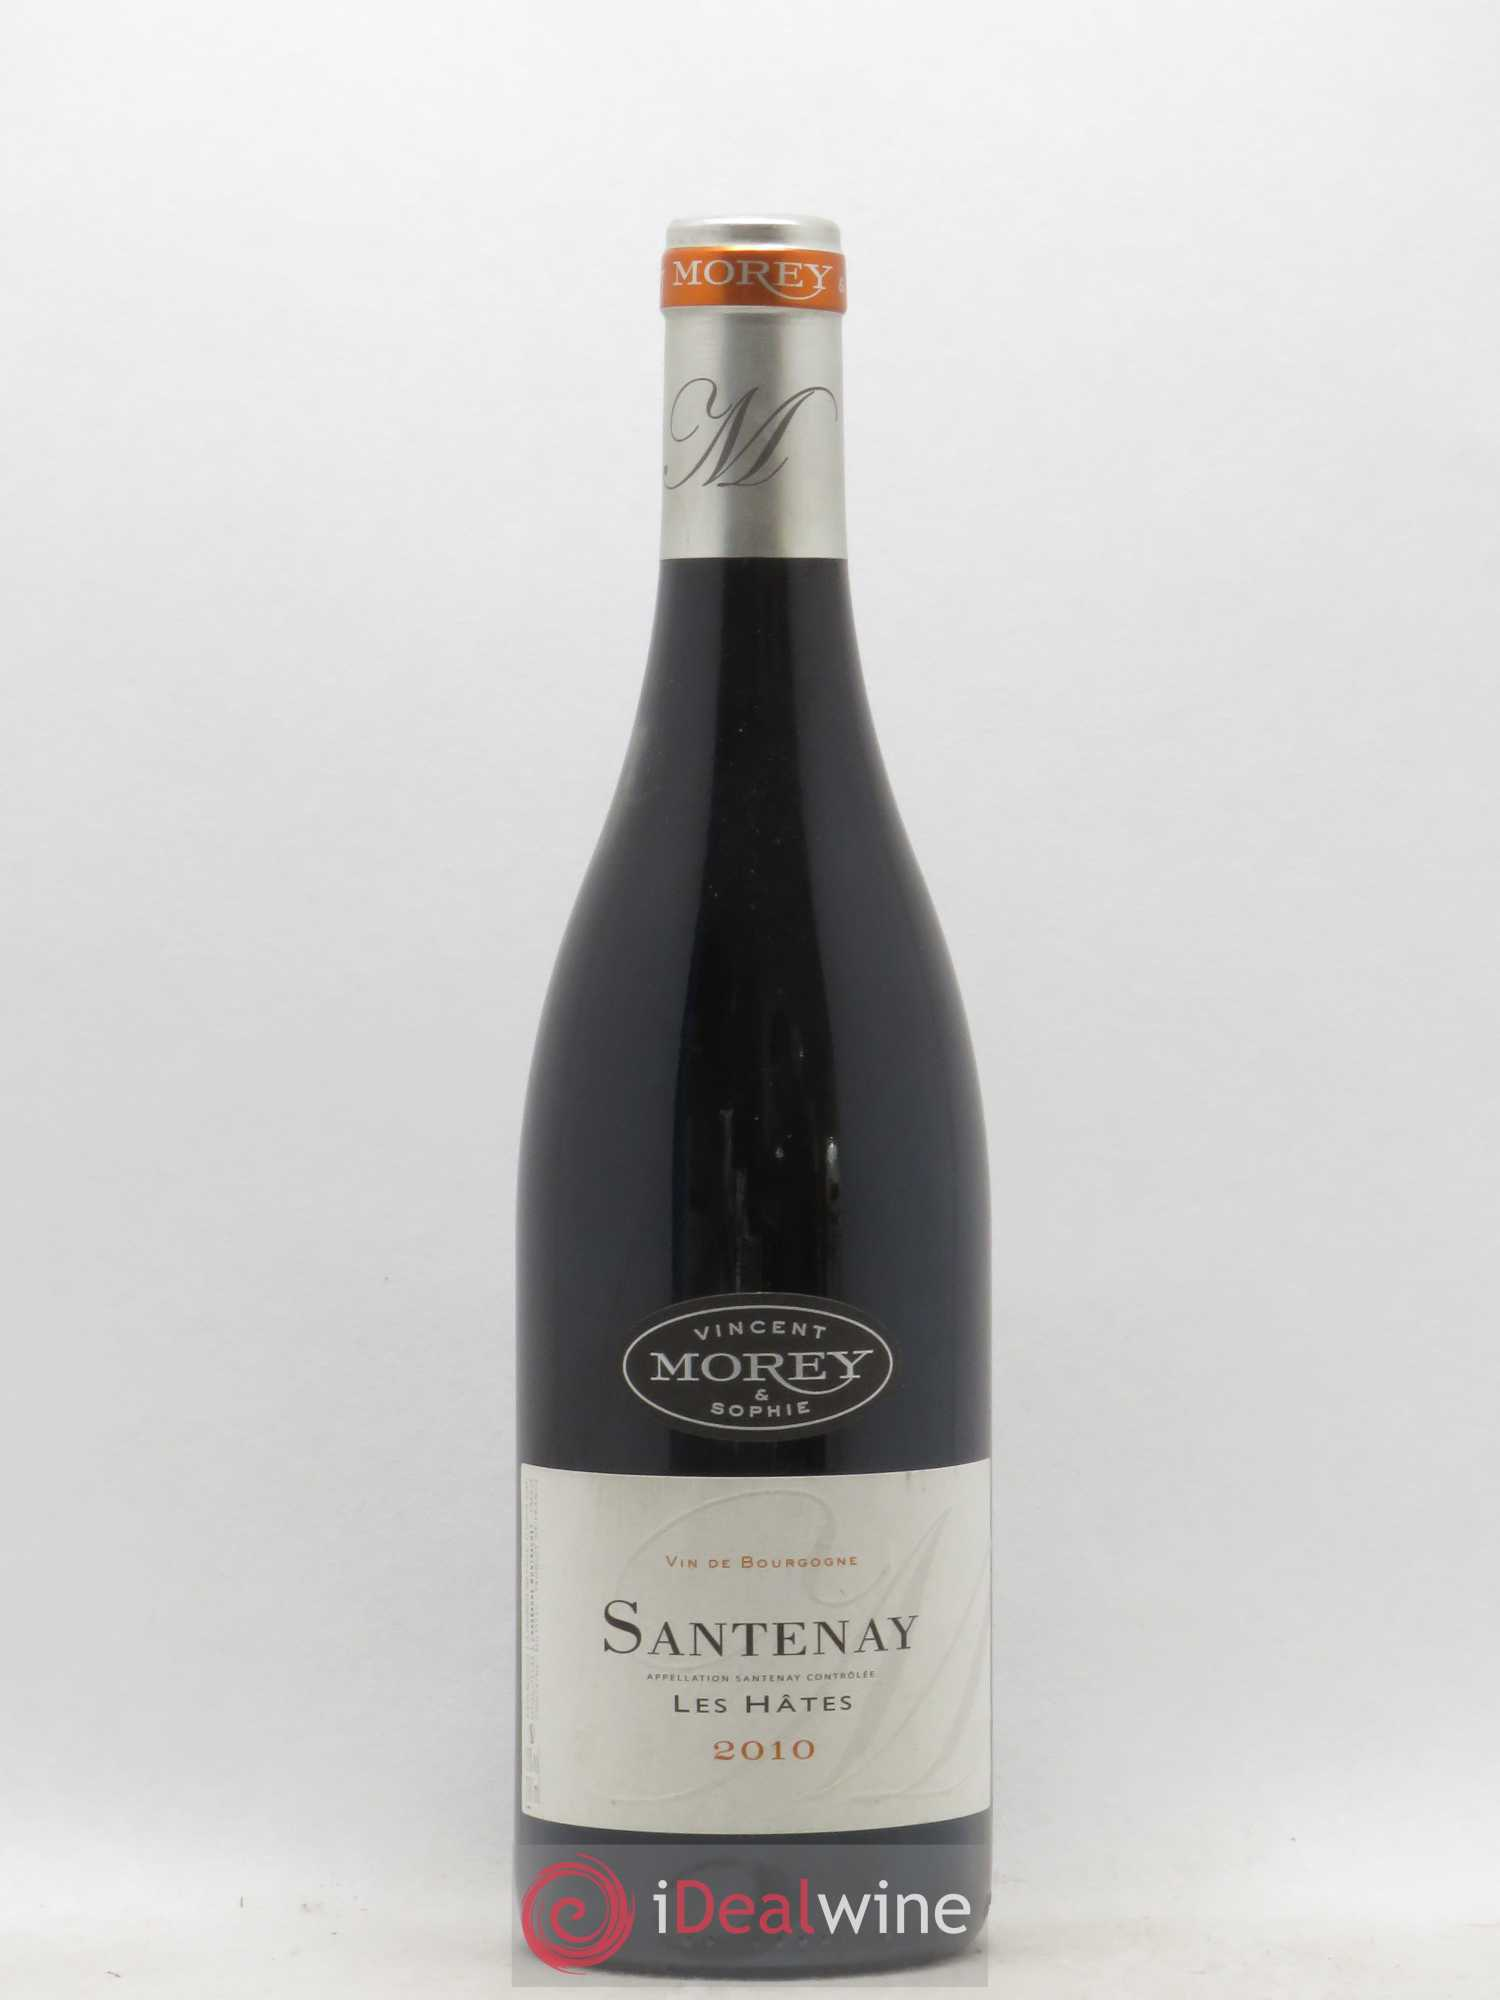 Santenay Les Hates Vincent Morey 2010 - Lot of 1 Bottle